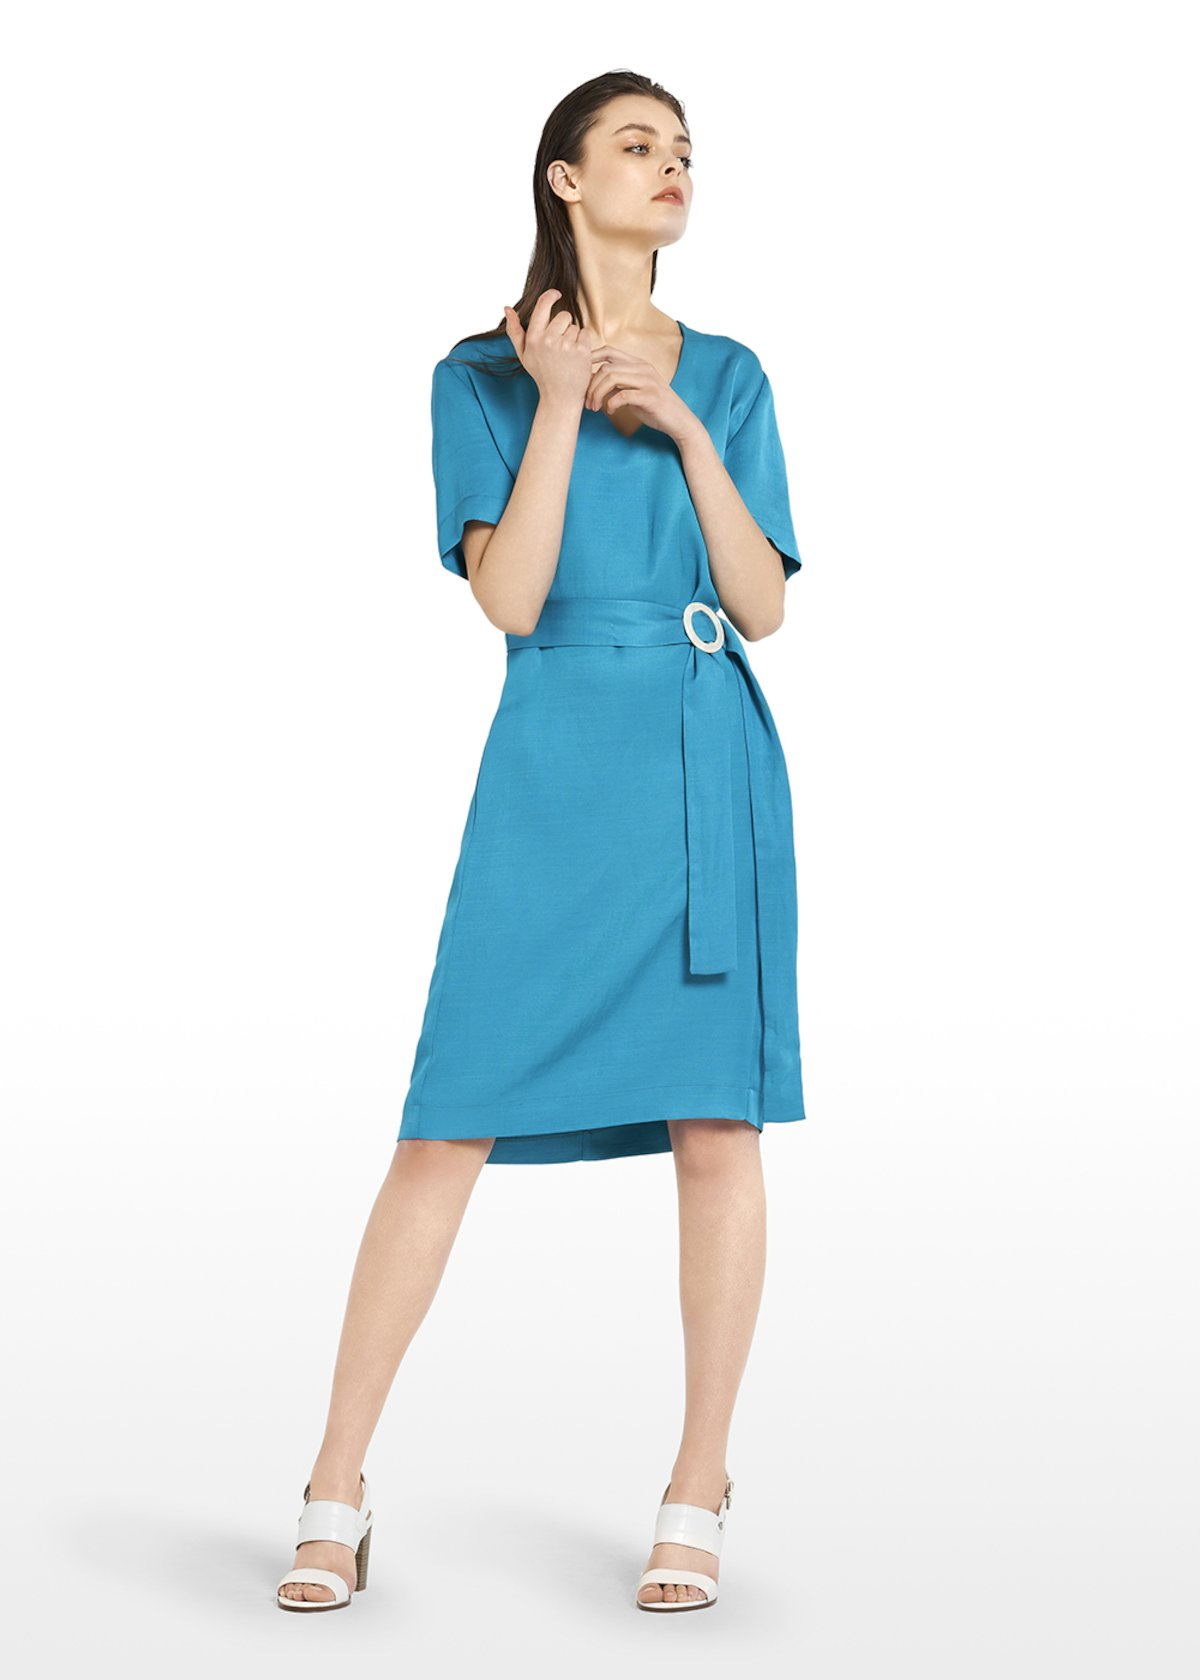 Ajaccio linen dress with V-neck and belt detail - Turquoise_Blue - Woman